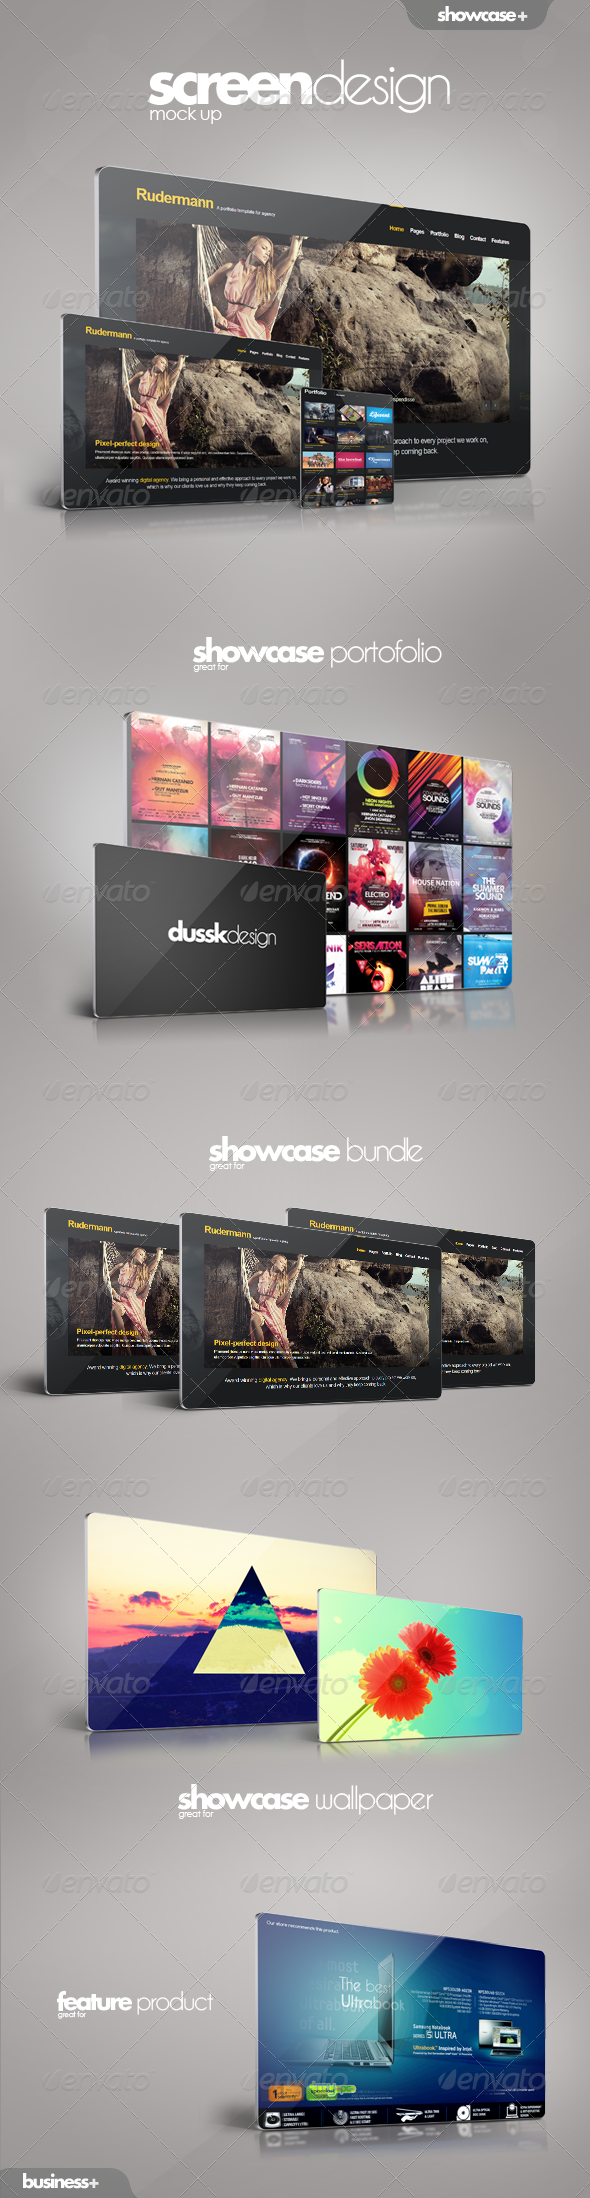 Screen Showcase Mock-up - Website Displays